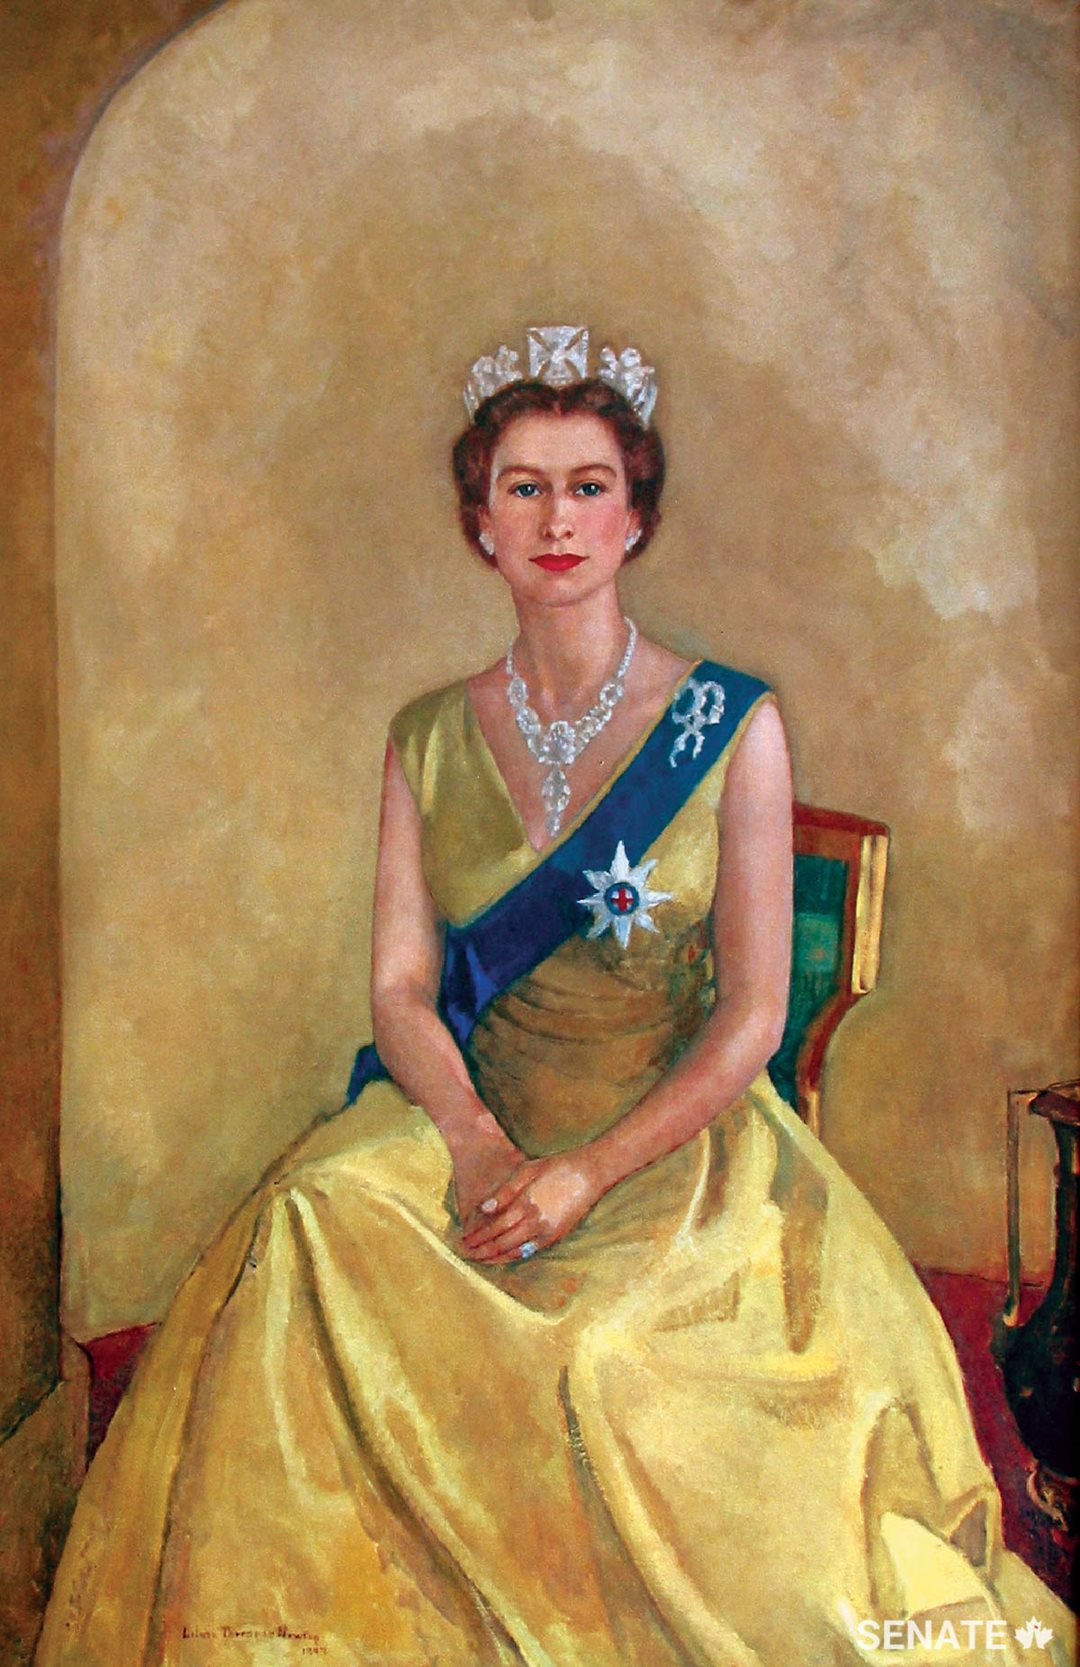 Montreal artist Lilias Torrance Newton painted this 1957 portrait of Queen Elizabeth II, which is on loan from the National Capital Commission's Crown Collection of the Official Residences and hangs in the main entrance of the Senate of Canada Building. (Image courtesy of the National Capital Commission)